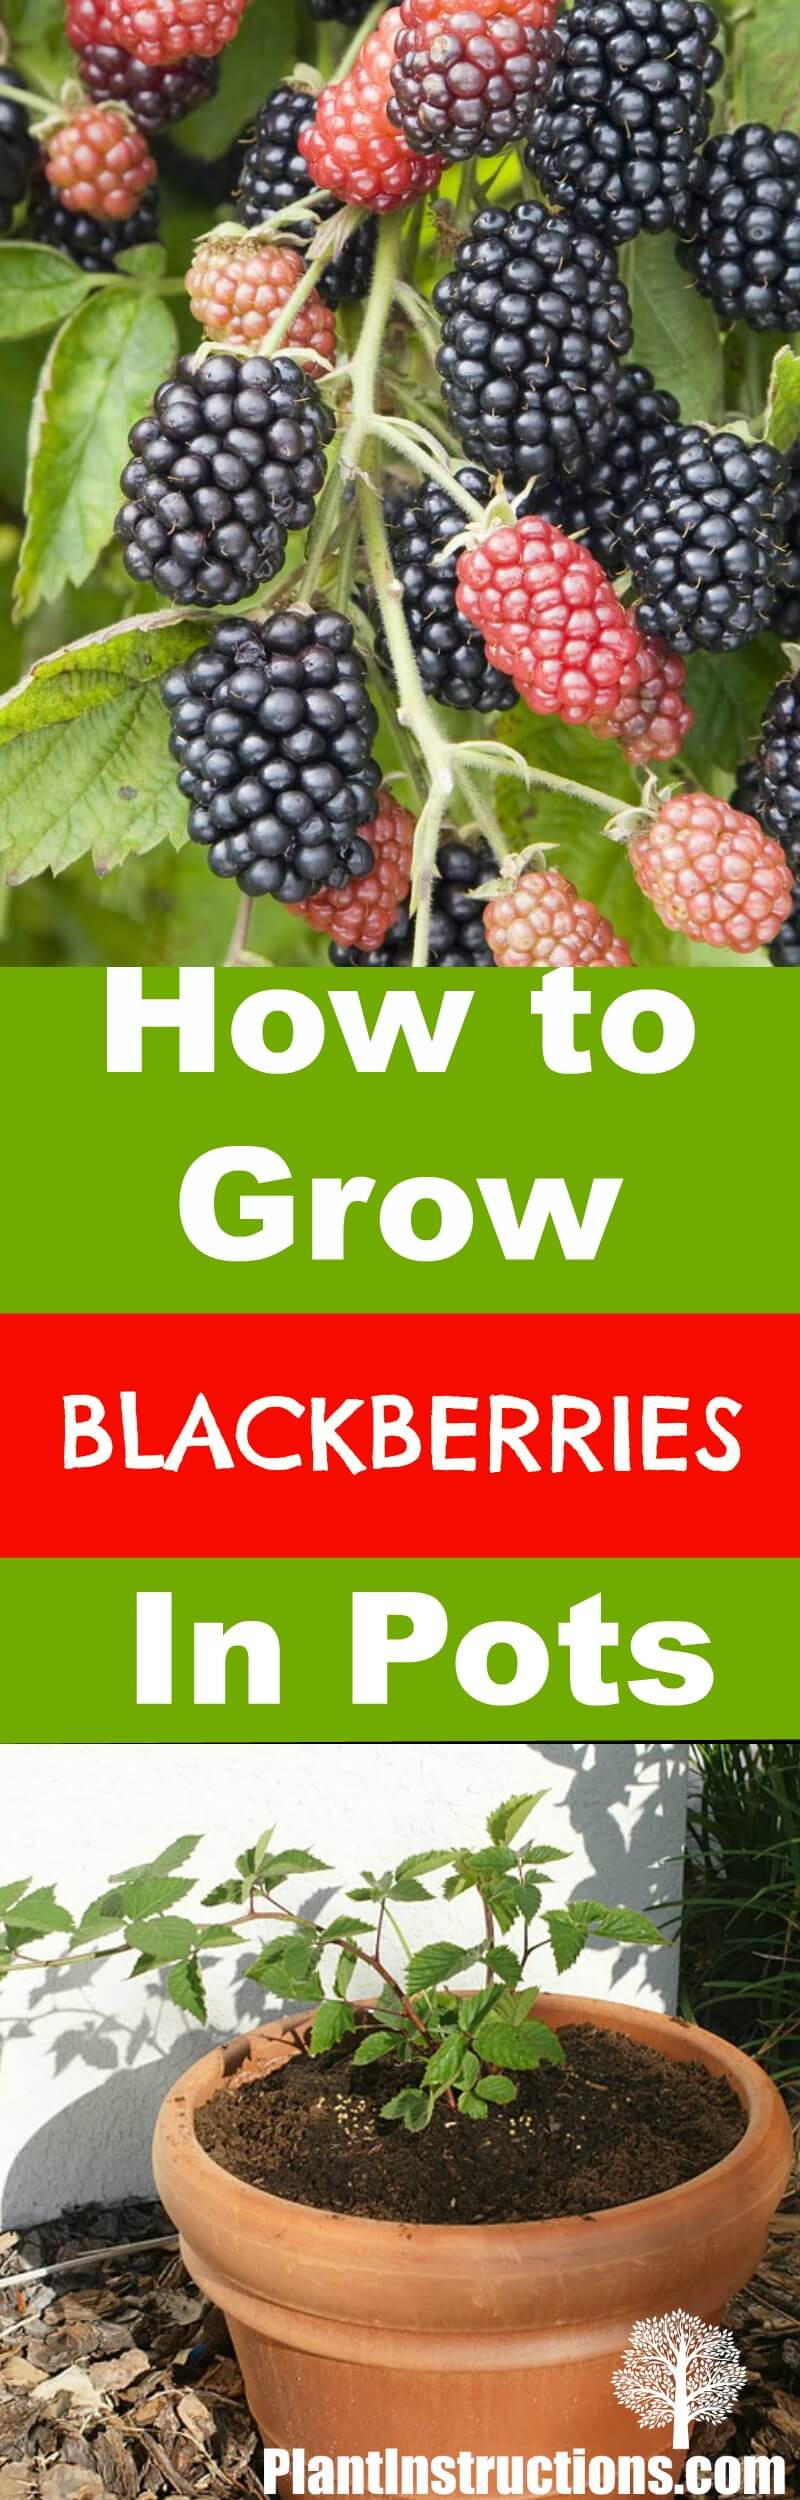 how to grow blackberries in pots plant instructions. Black Bedroom Furniture Sets. Home Design Ideas